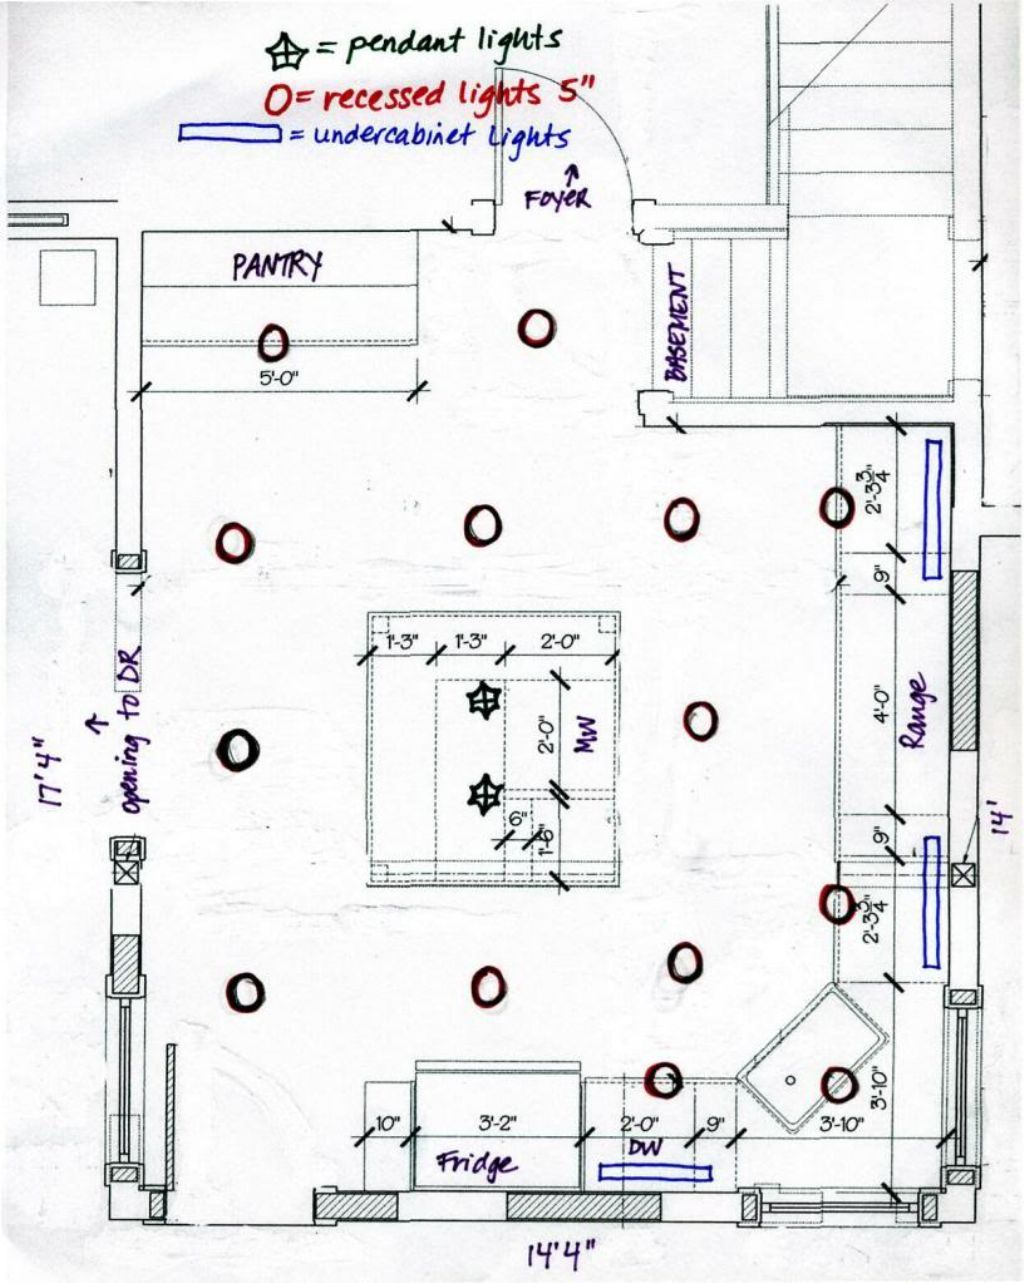 Recessed Lighting Layout Diagram Recessed Lighting Layout